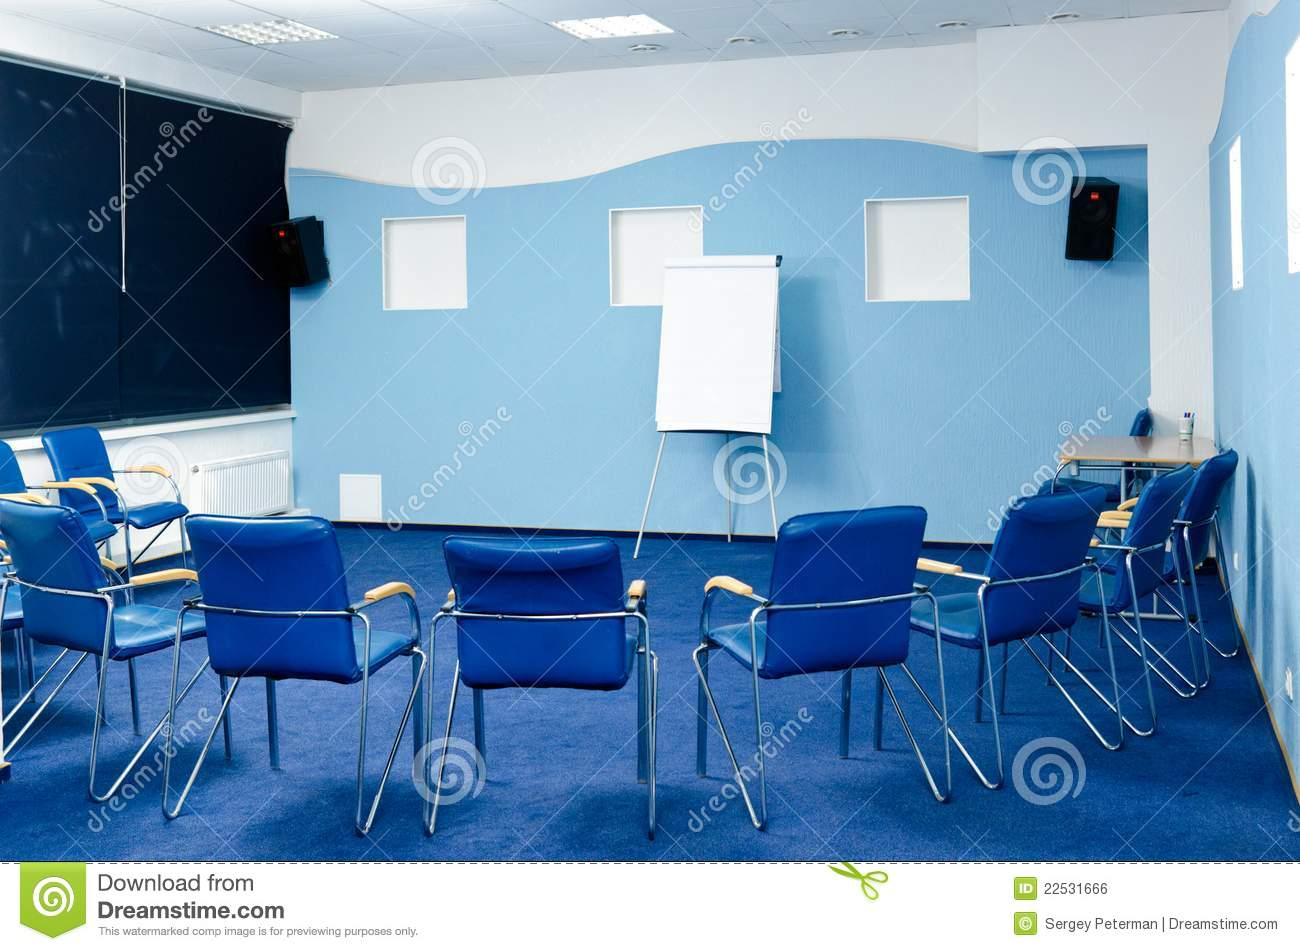 blue office chair garden covers seat cushion conference room royalty free stock image - image: 22531666